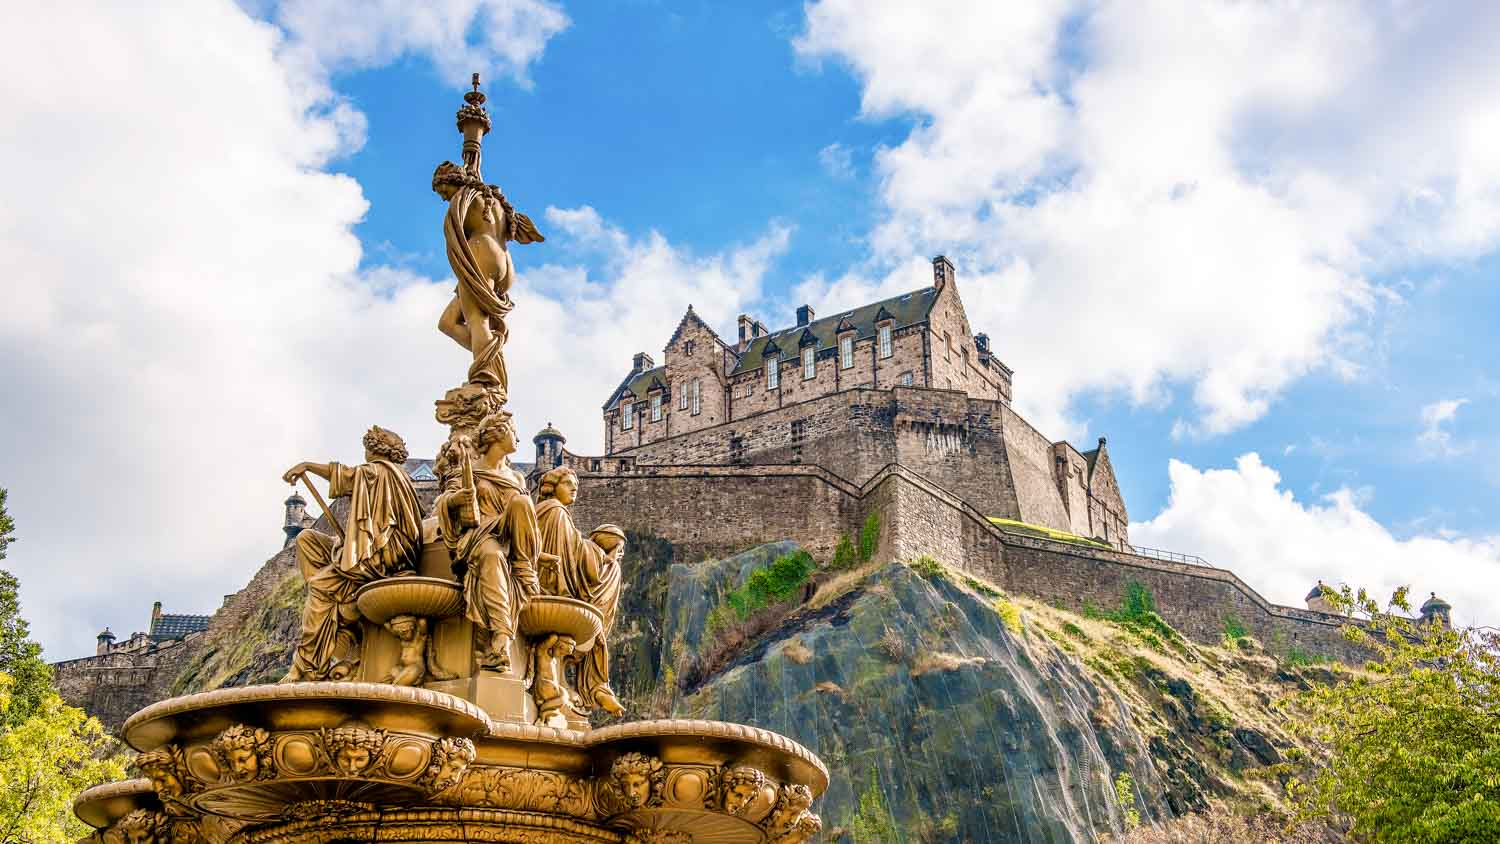 Edinburgh Castle Scotland UK